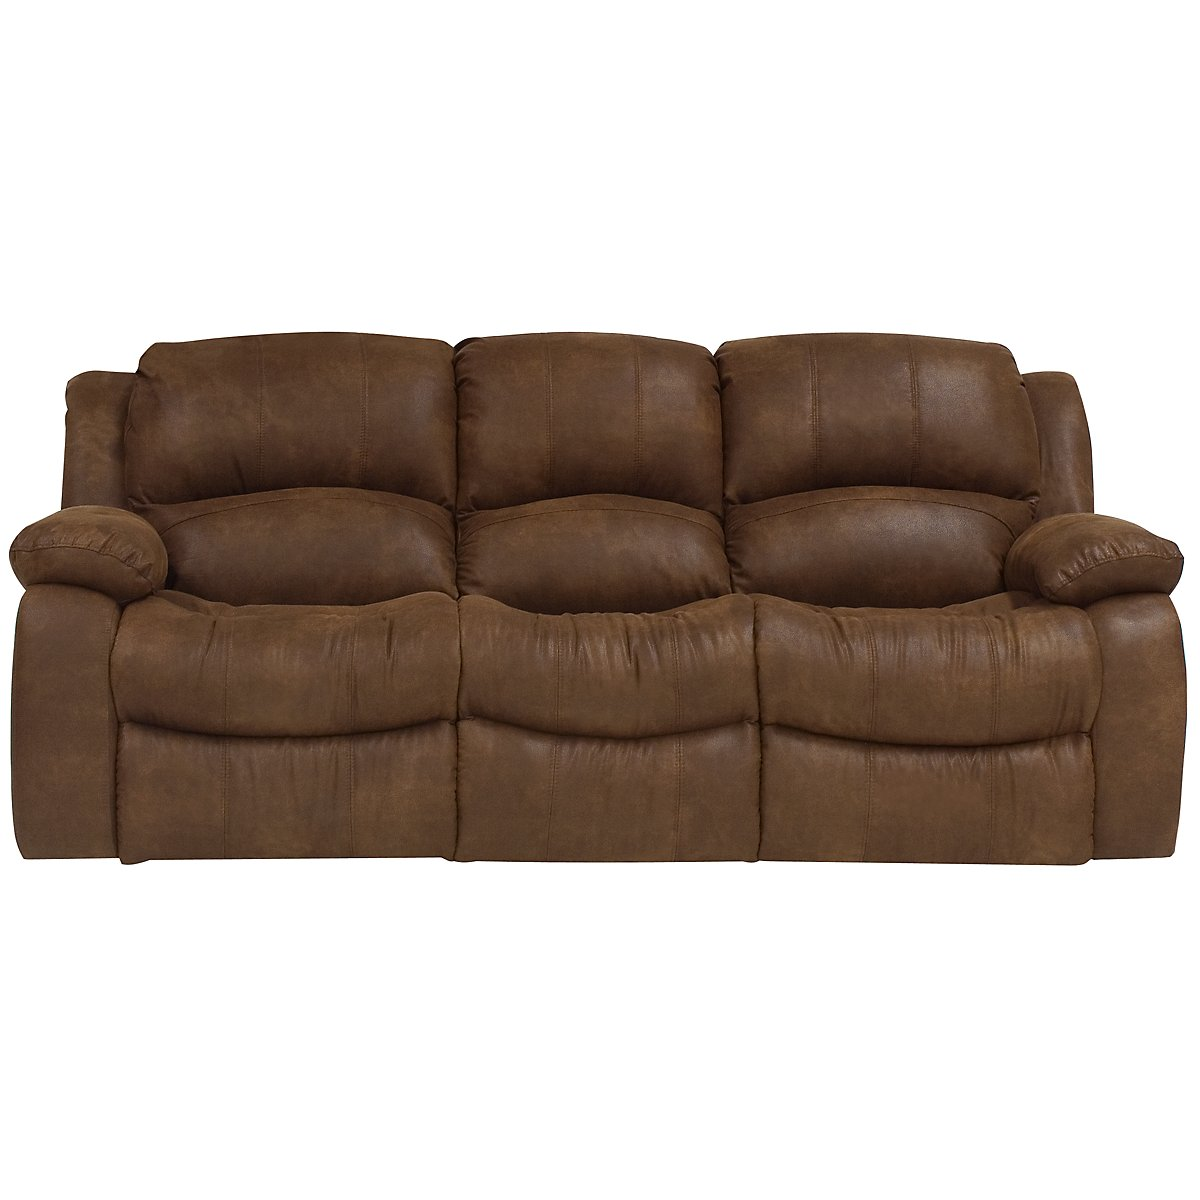 Tan Reclining Sofa Sofa Review